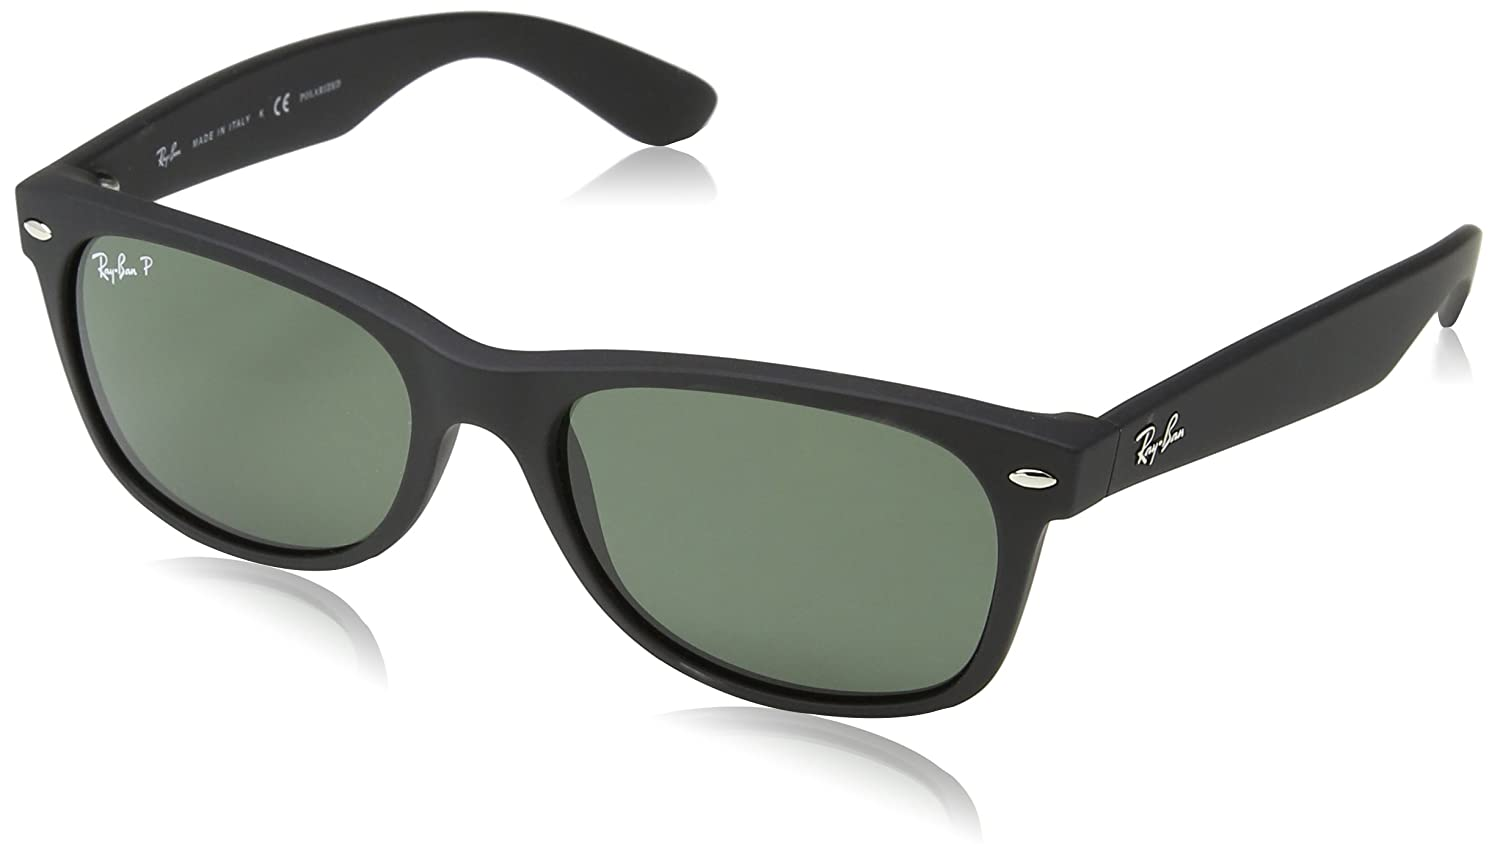 63cccfe34f1e3 Amazon.com  Ray-Ban